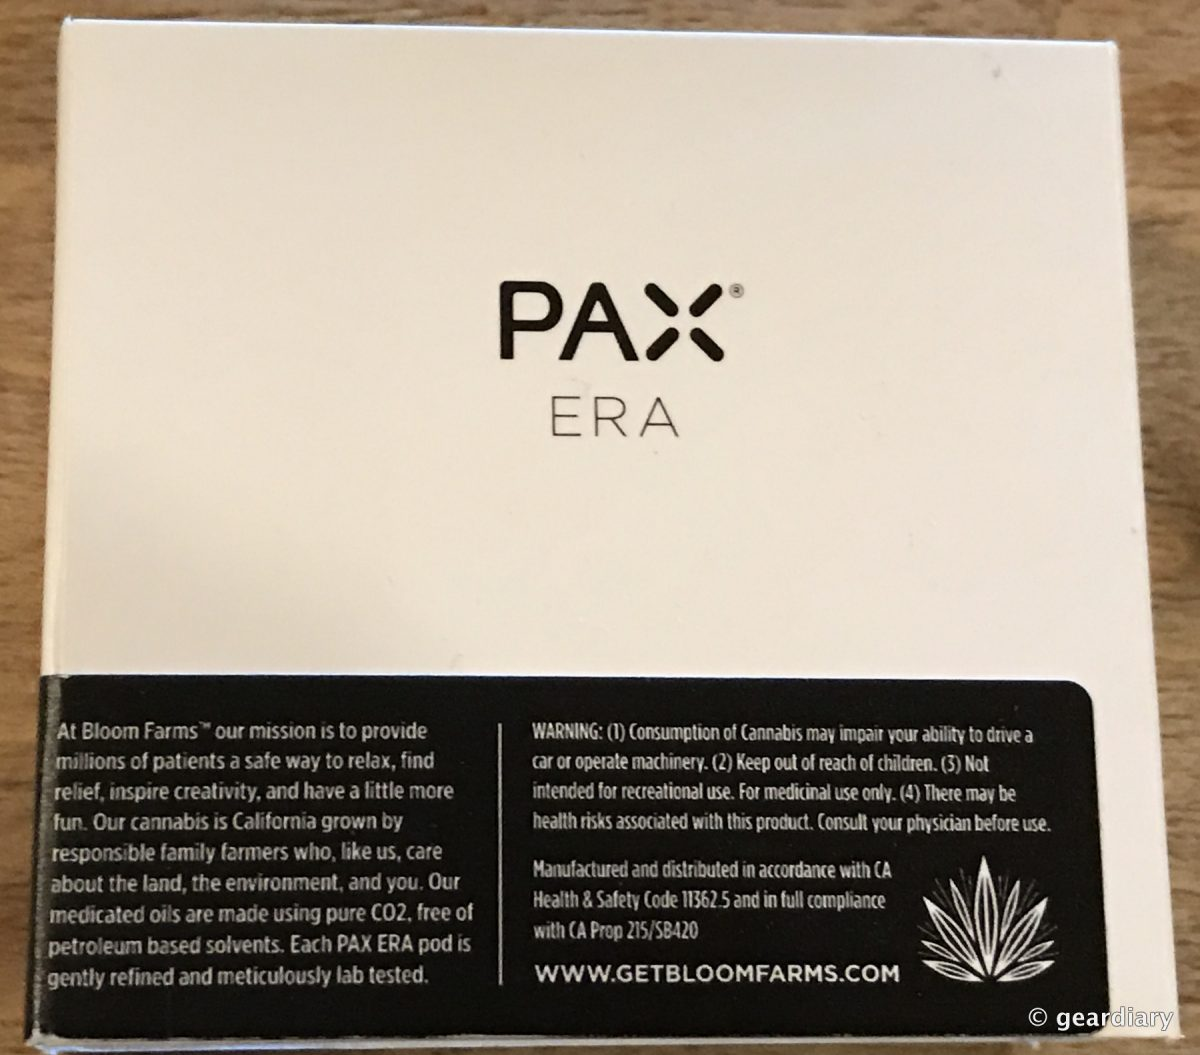 PAX Era: The On-Demand Slim Extract Vaporizer Ready for